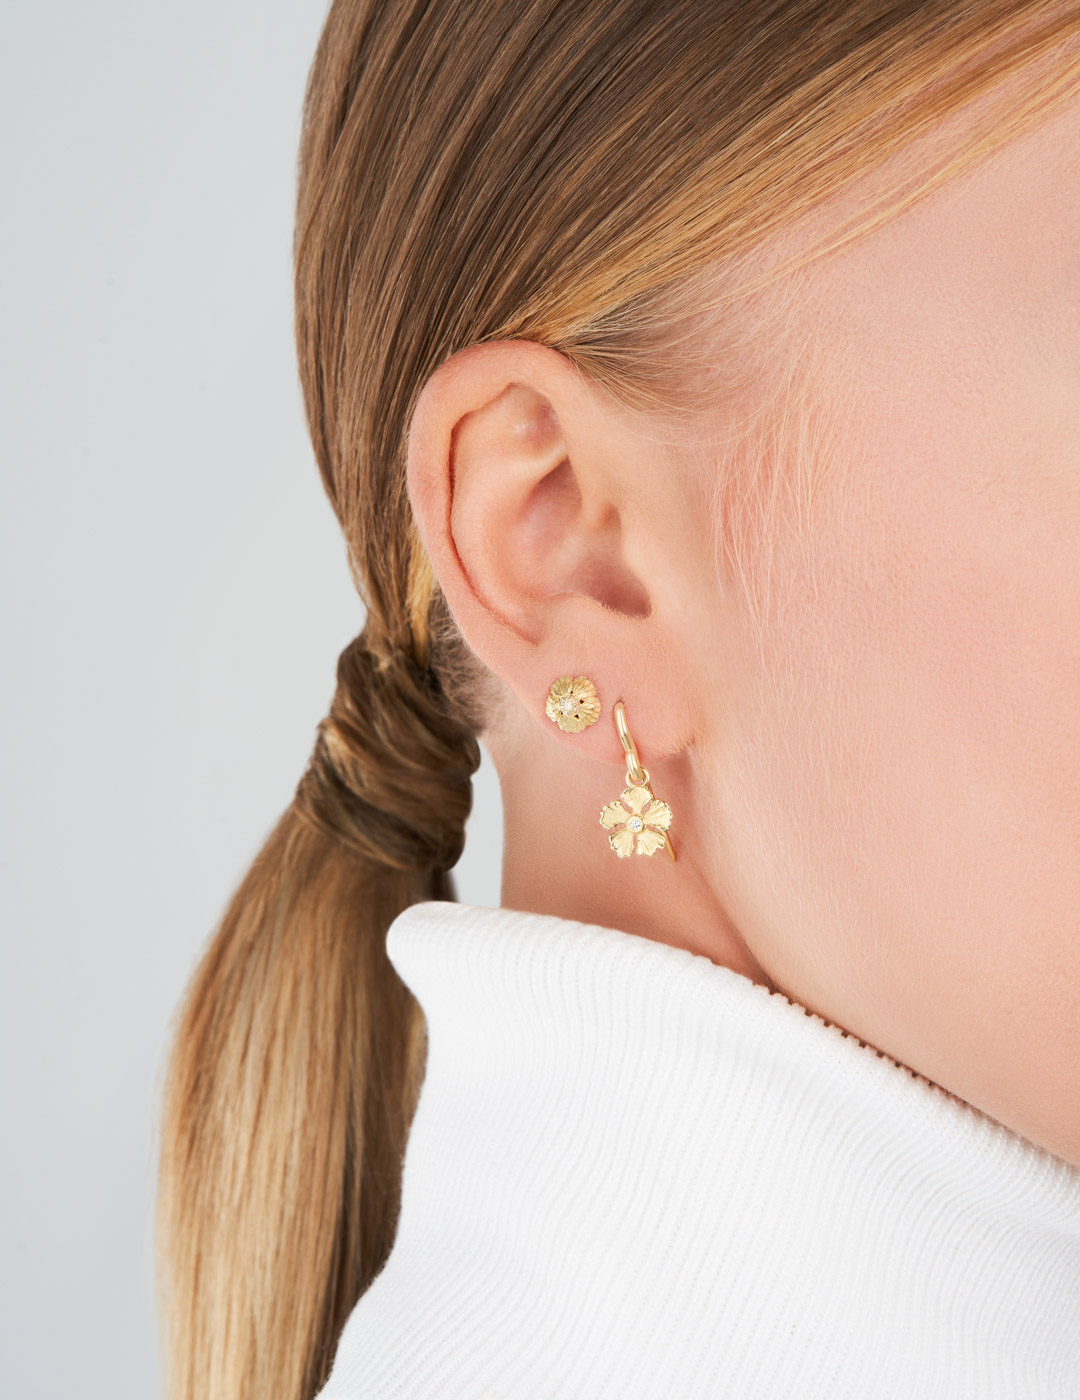 mish_products_earrings_StrawFlwr-Tiny Pave Dome-Stud-ER-2